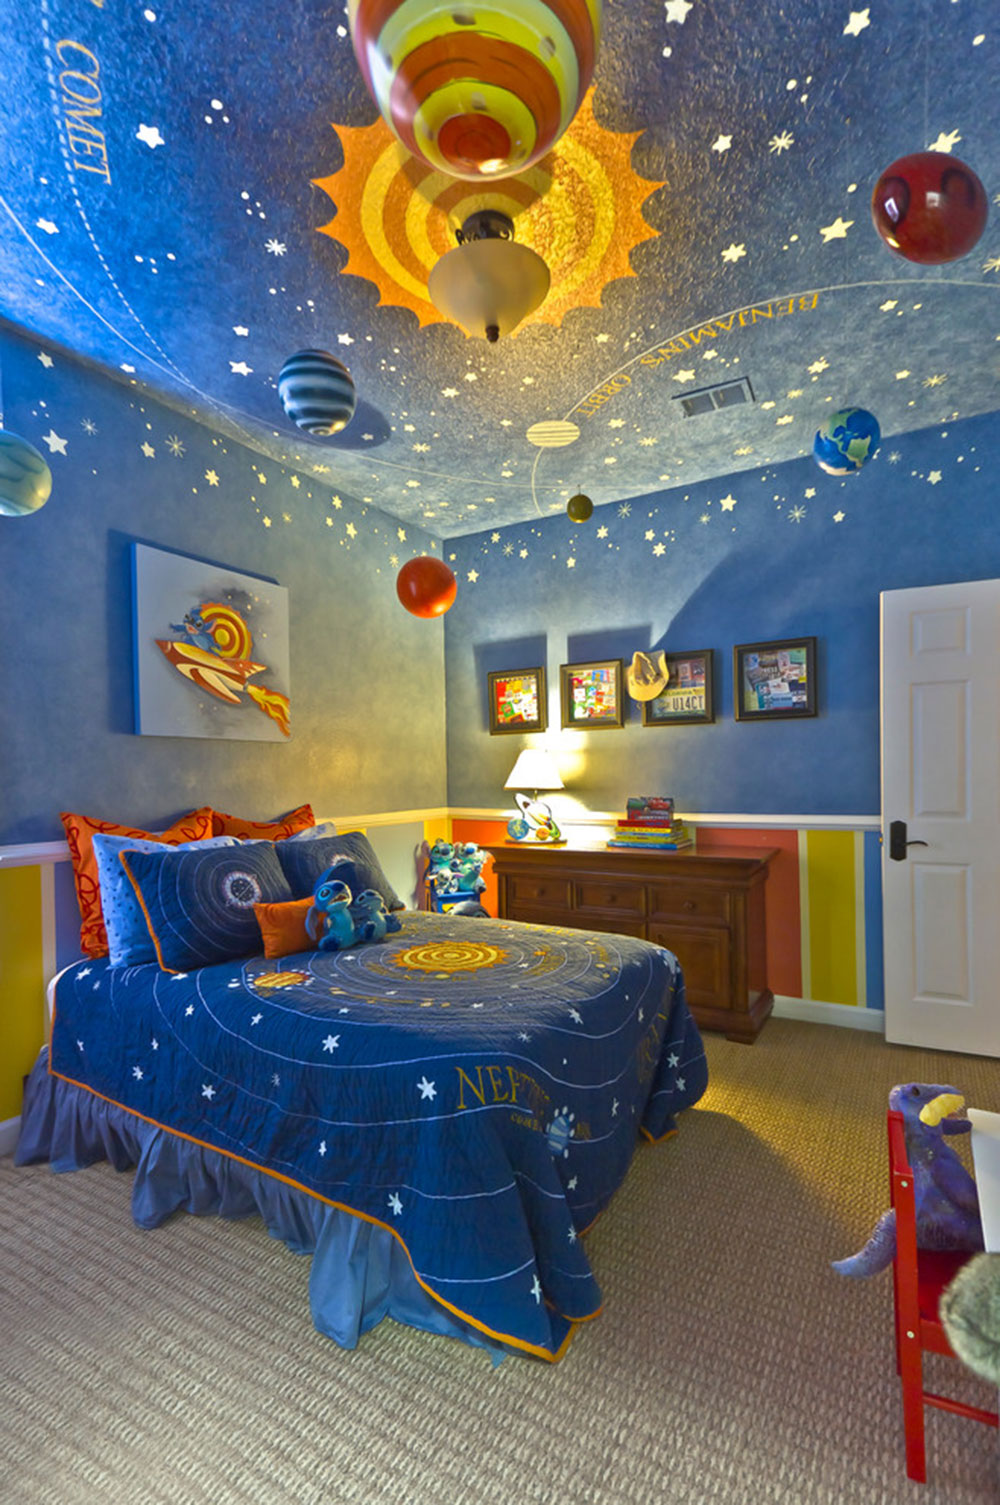 Toddler Room Ideas To Make The Best Room Possible For Your Child